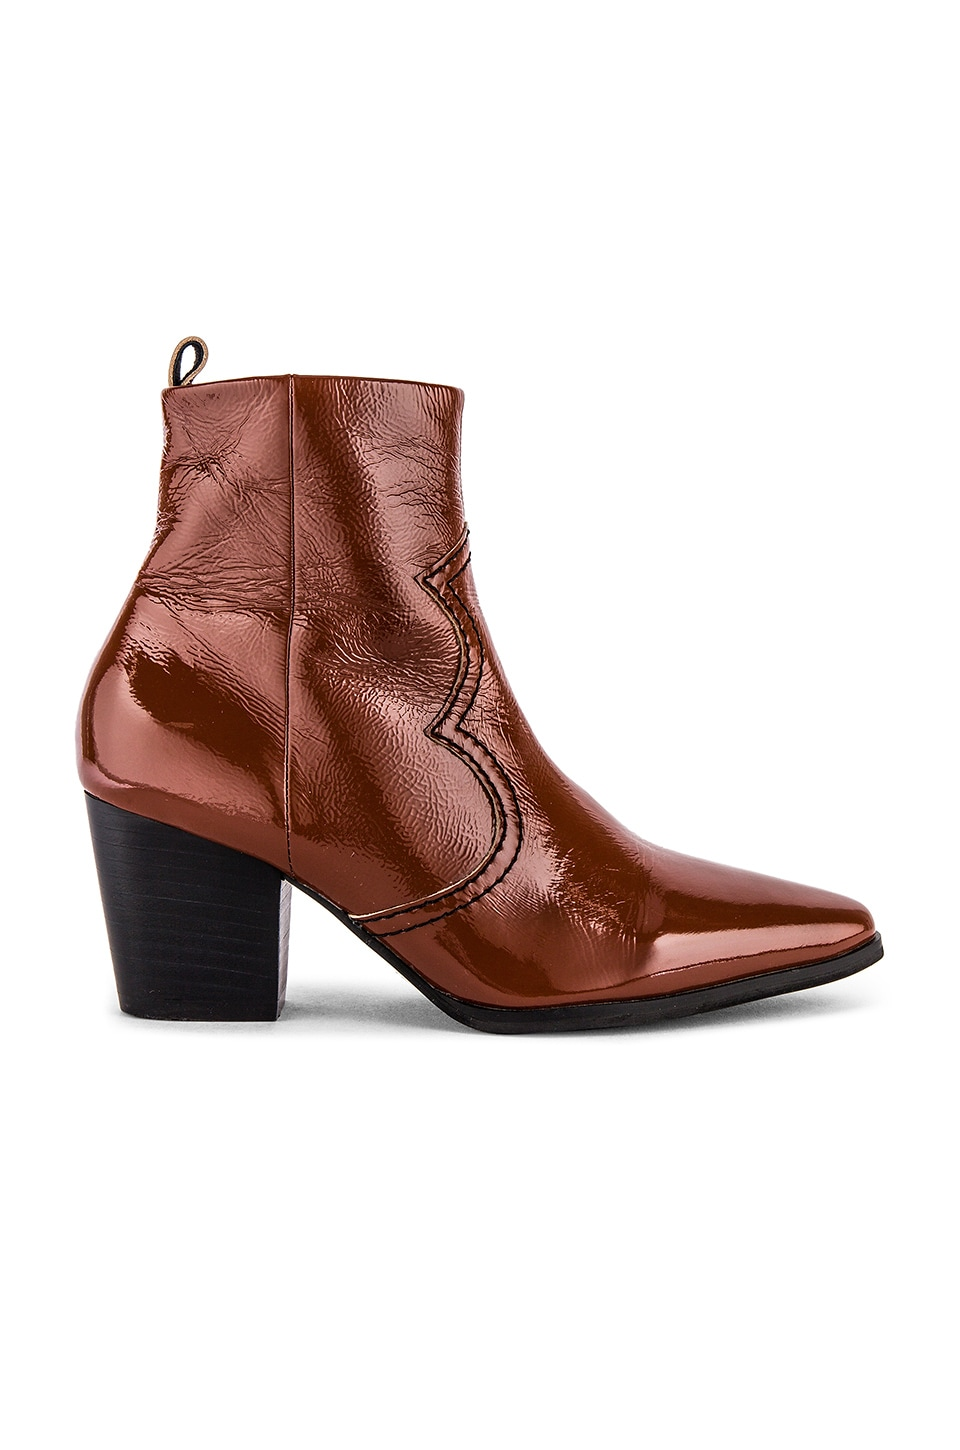 Caverley Western Bootie in Hickory